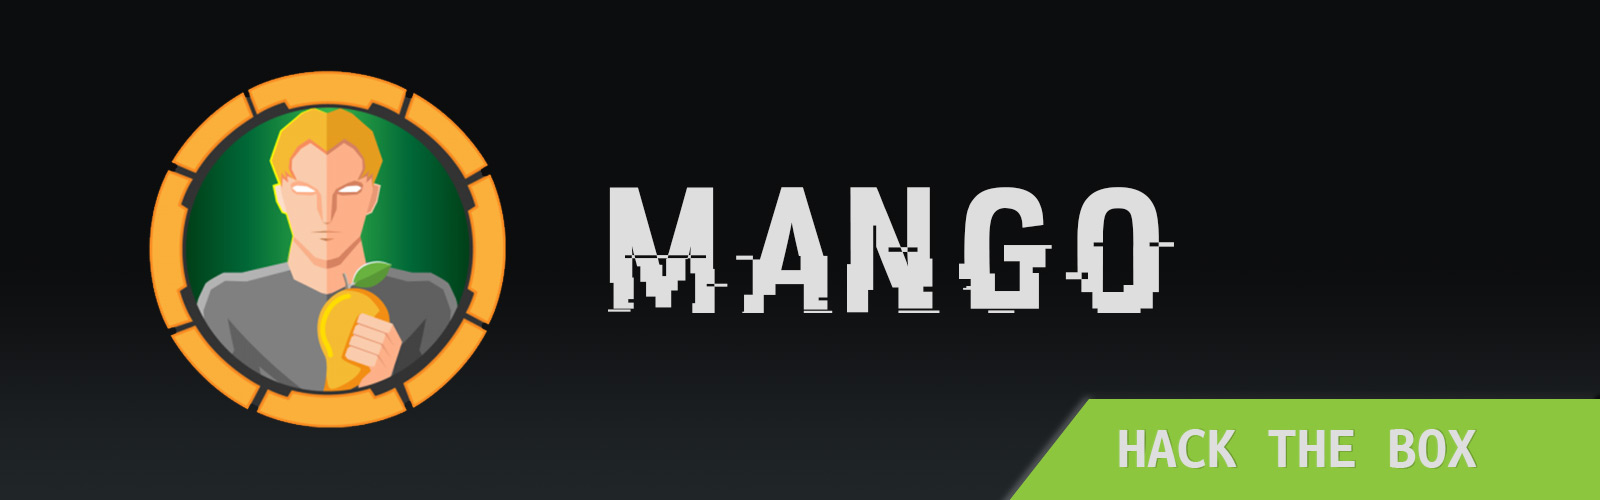 HackTheBox WriteUp Mango